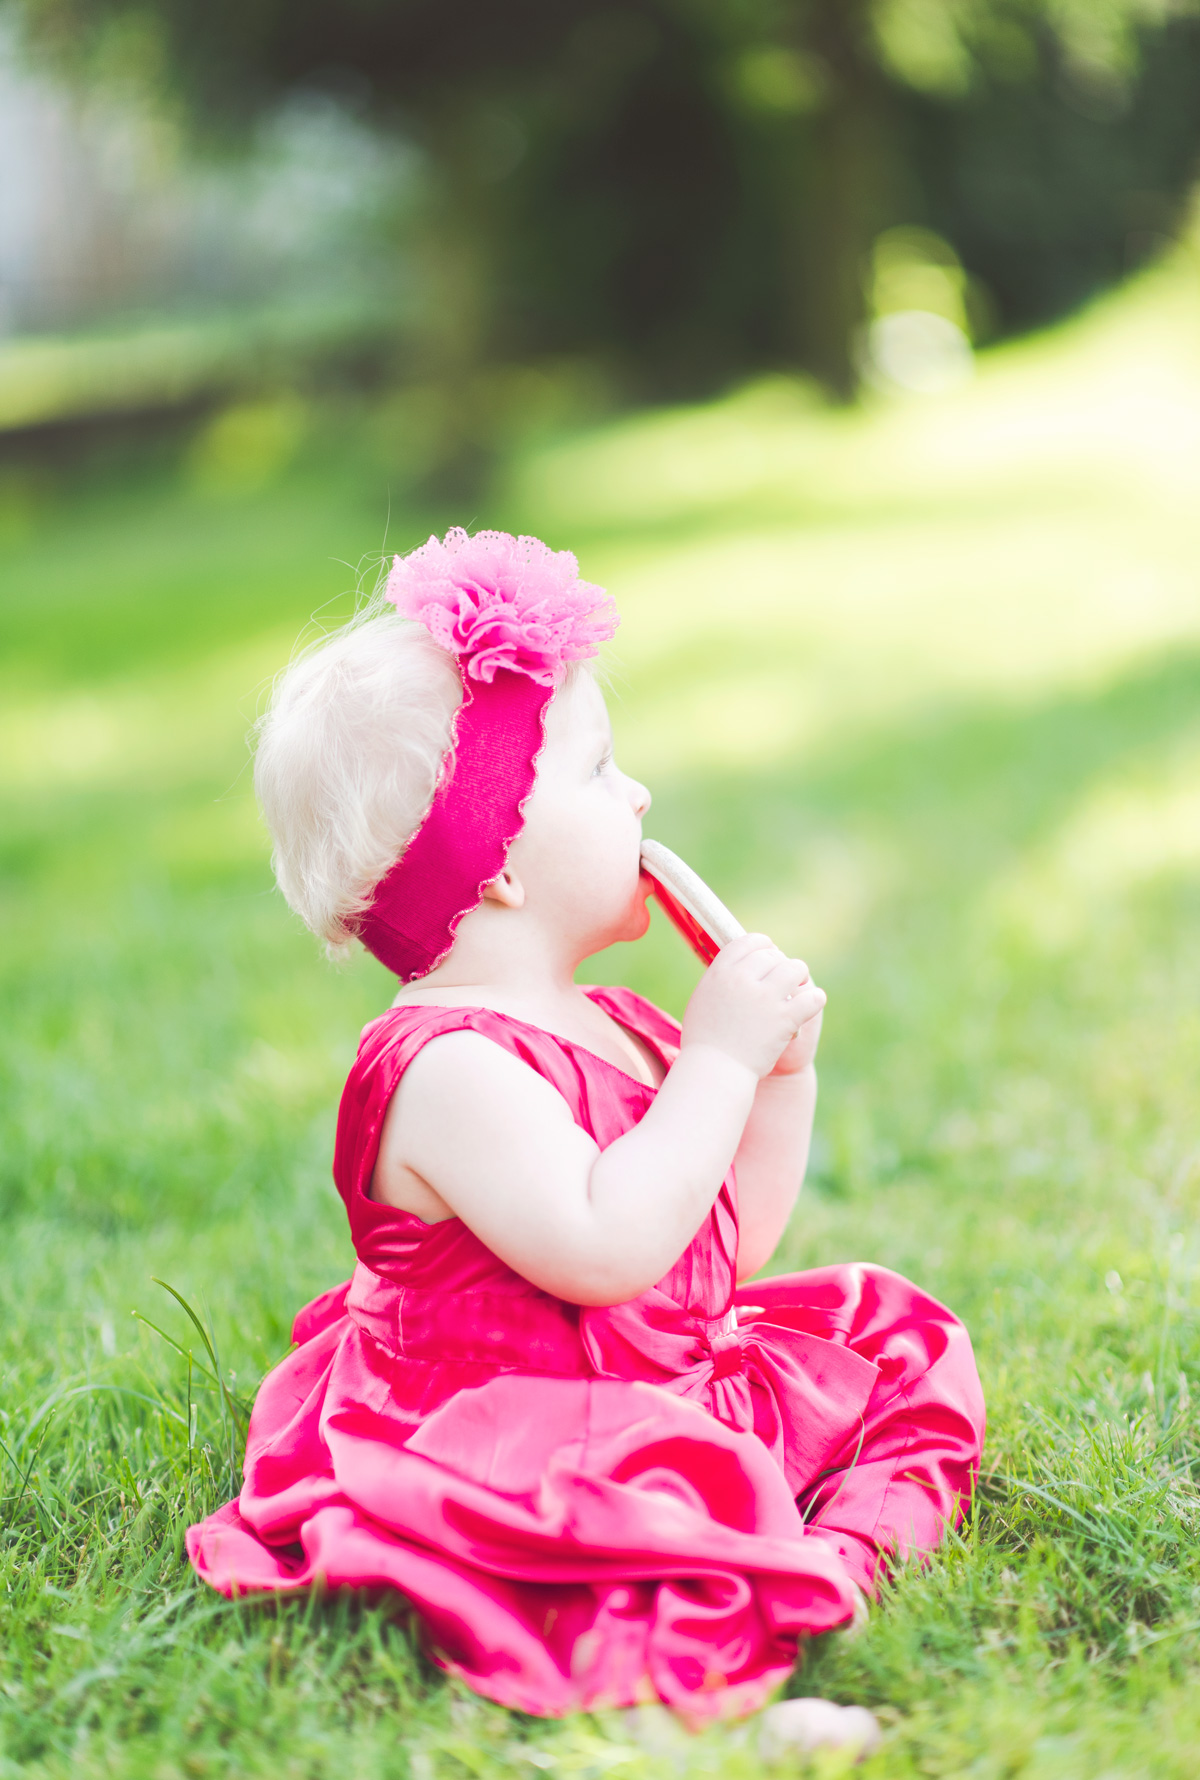 Baby girl in pink dress sitting on the grass in the garden